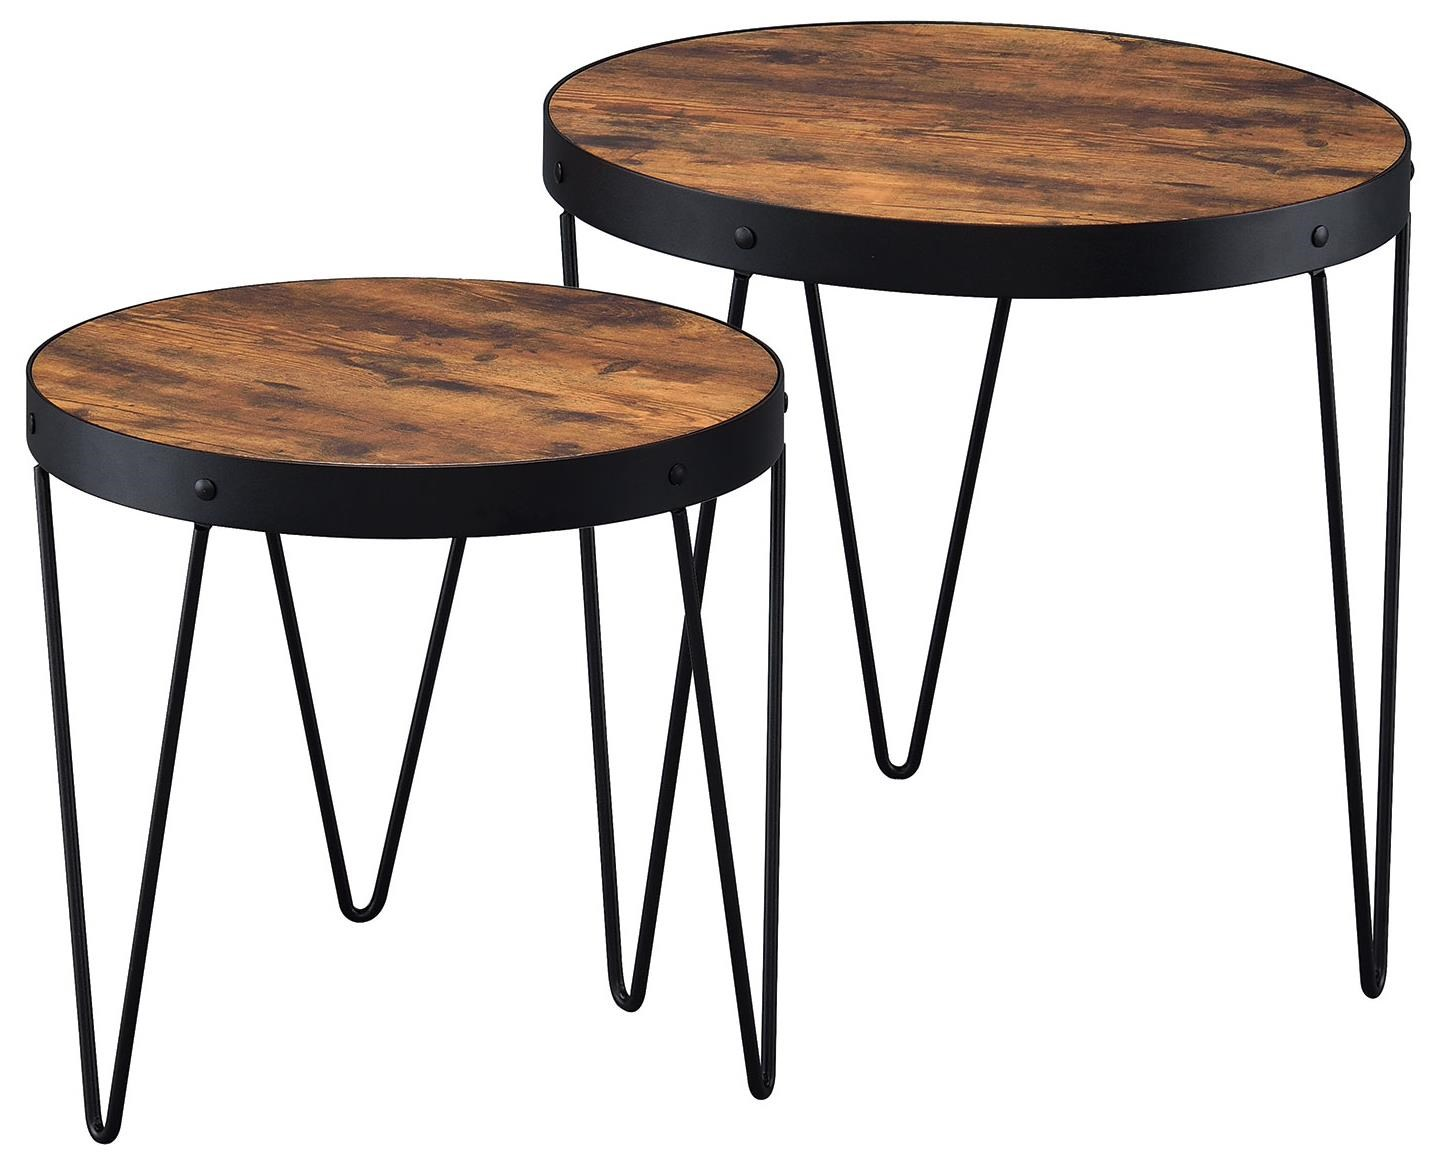 Coaster Nesting TablesNesting Tables ...  sc 1 st  Prime Brothers Furniture & Coaster Nesting Tables 2-Piece Nesting Table Set with Hairpin Legs ...